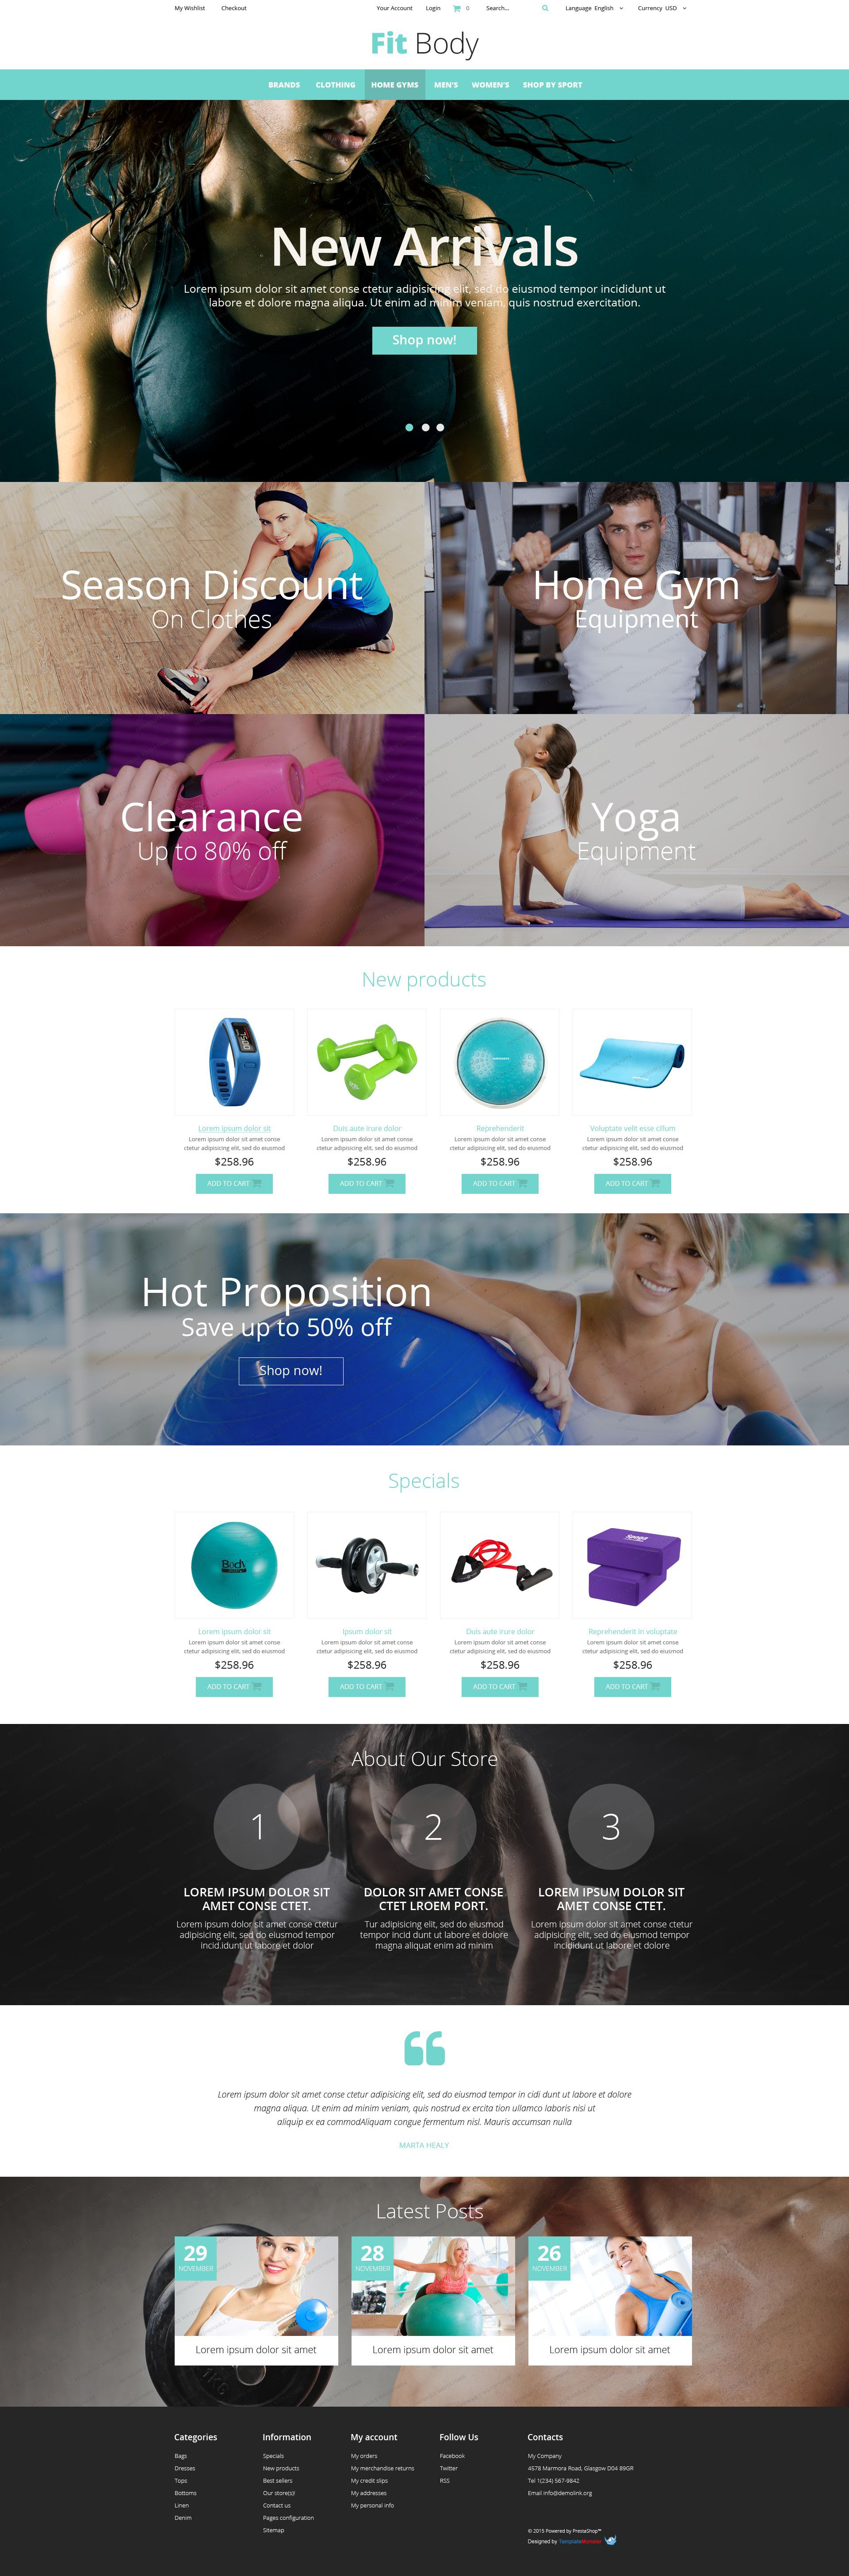 The Fit Body Store Magento Design 53327, one of the best Magento themes of its kind (sport, most popular), also known as fit body store Magento template, athletic Magento template, equipment Magento template, training Magento template, clothes Magento template, extreme Magento template, weight Magento template, boxing Magento template, cycling Magento template, vitamins Magento template, collection Magento template, product Magento template, arrivals Magento template, collection Magento template, fishing Magento template, golf Magento template, darts Magento template, reviews Magento template, products and related with fit body store, athletic, equipment, training, clothes, extreme, weight, boxing, cycling, vitamins, collection, product, arrivals, collection, fishing, golf, darts, reviews, products, etc.